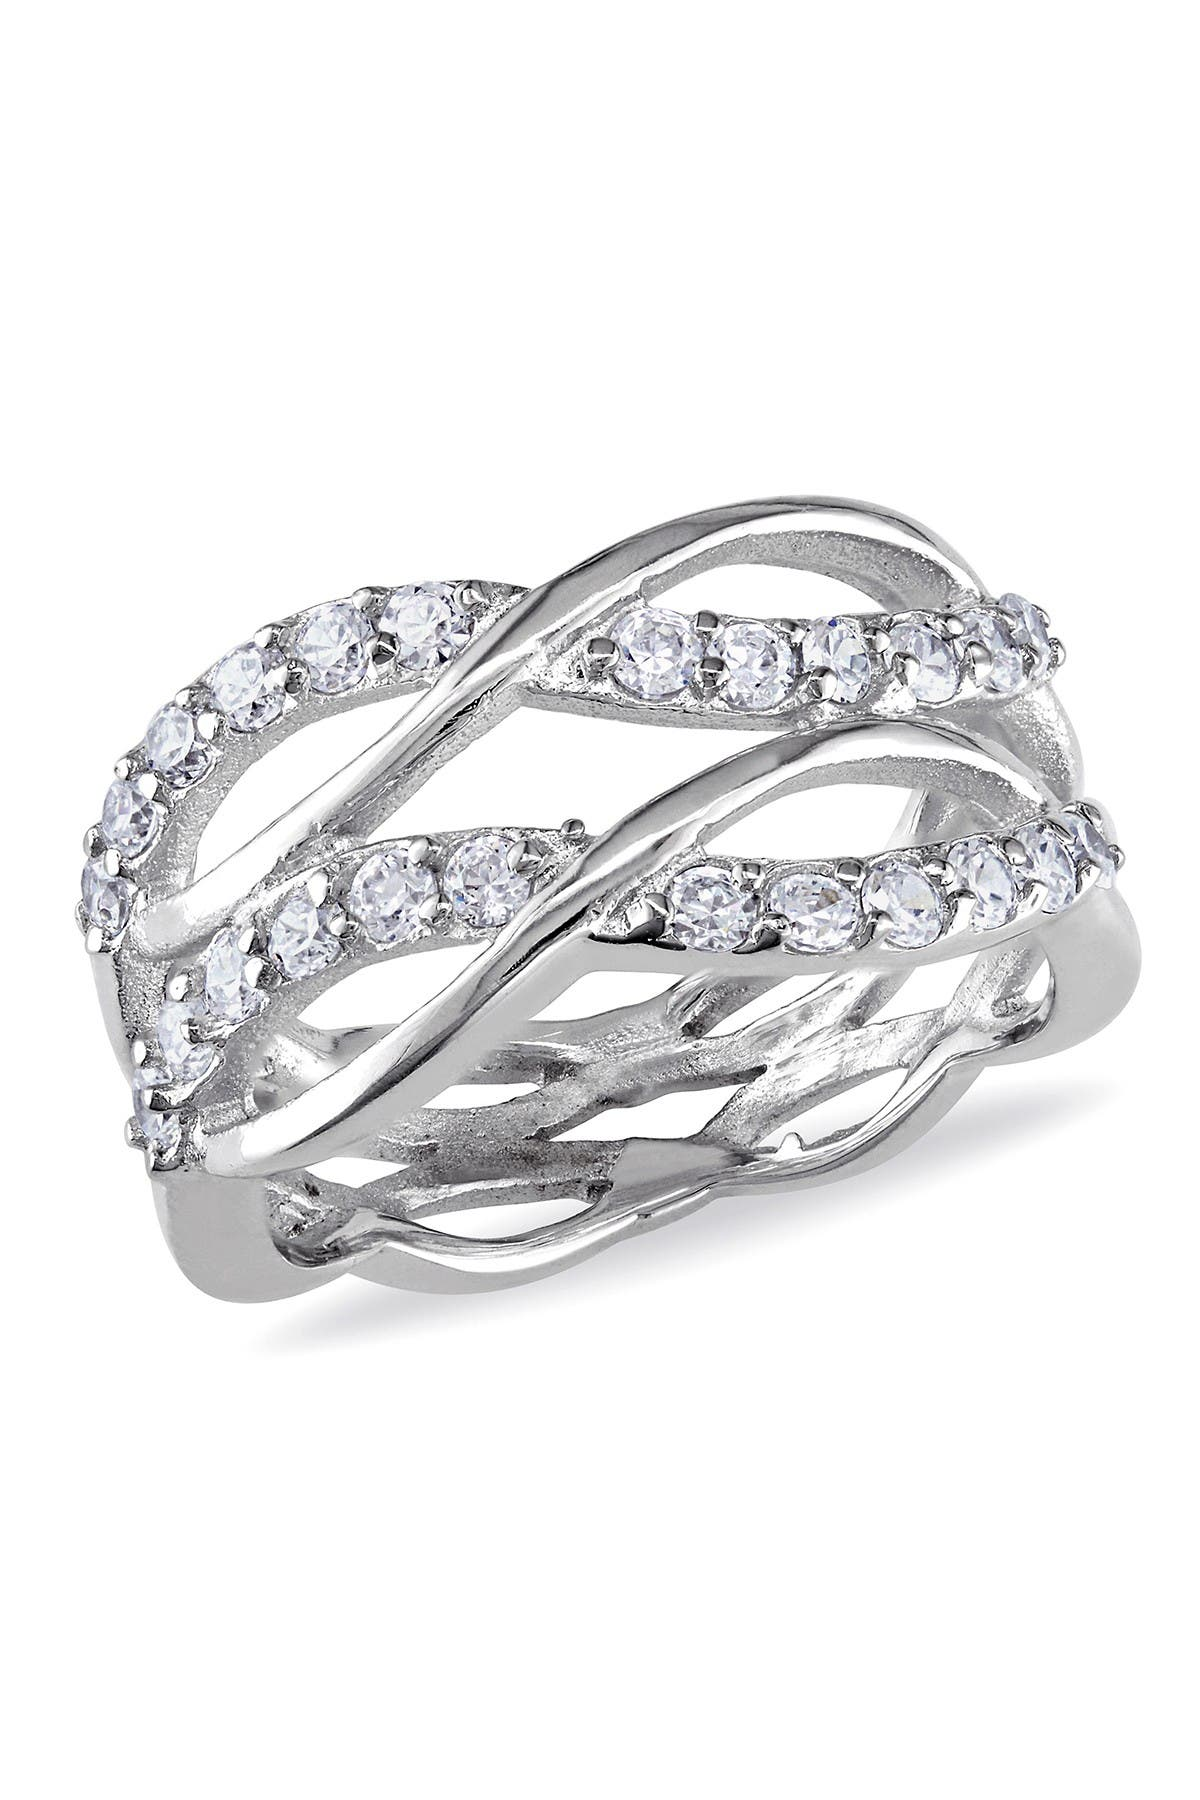 Image of Delmar Sterling Silver CZ Tiered Crisscross Ring